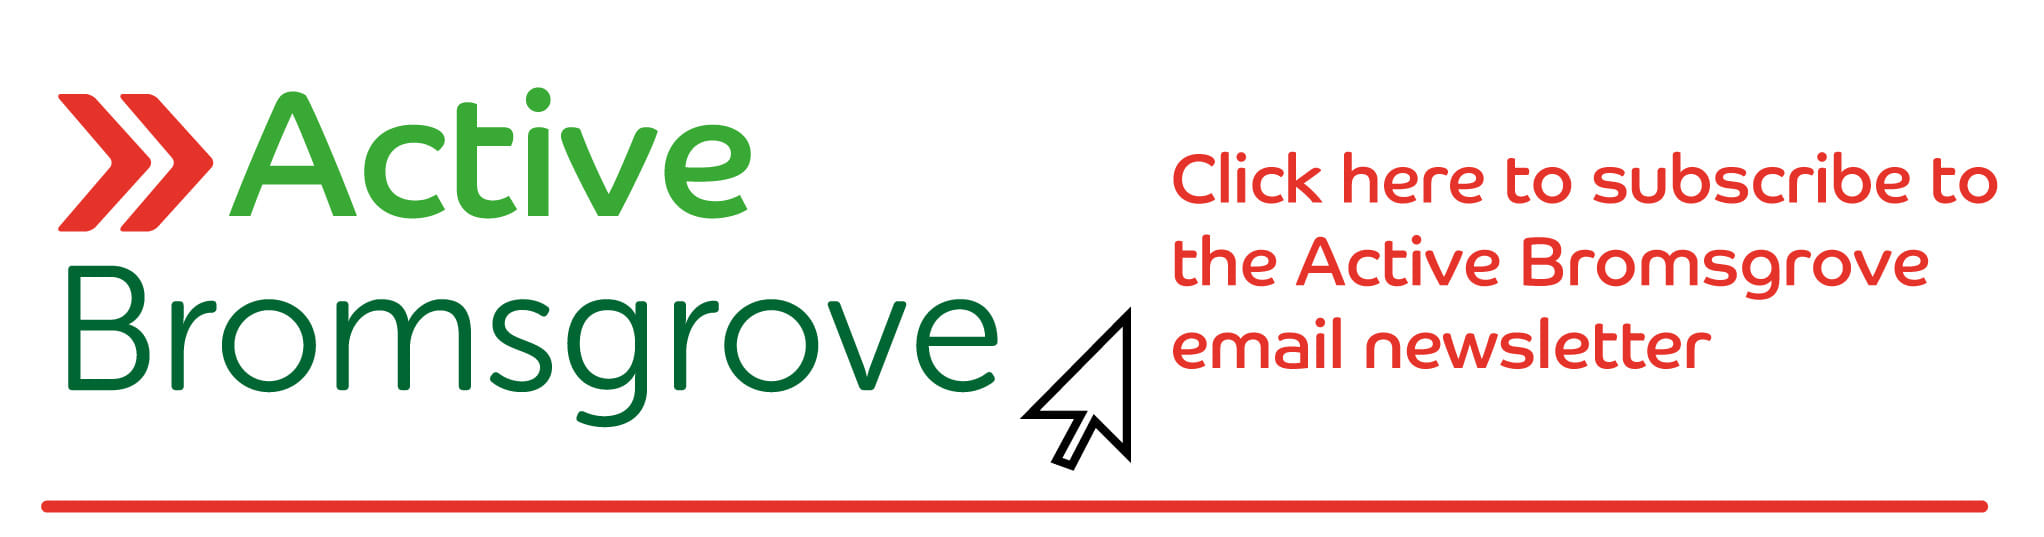 Sign up for the Active Brosmgrove newsletter